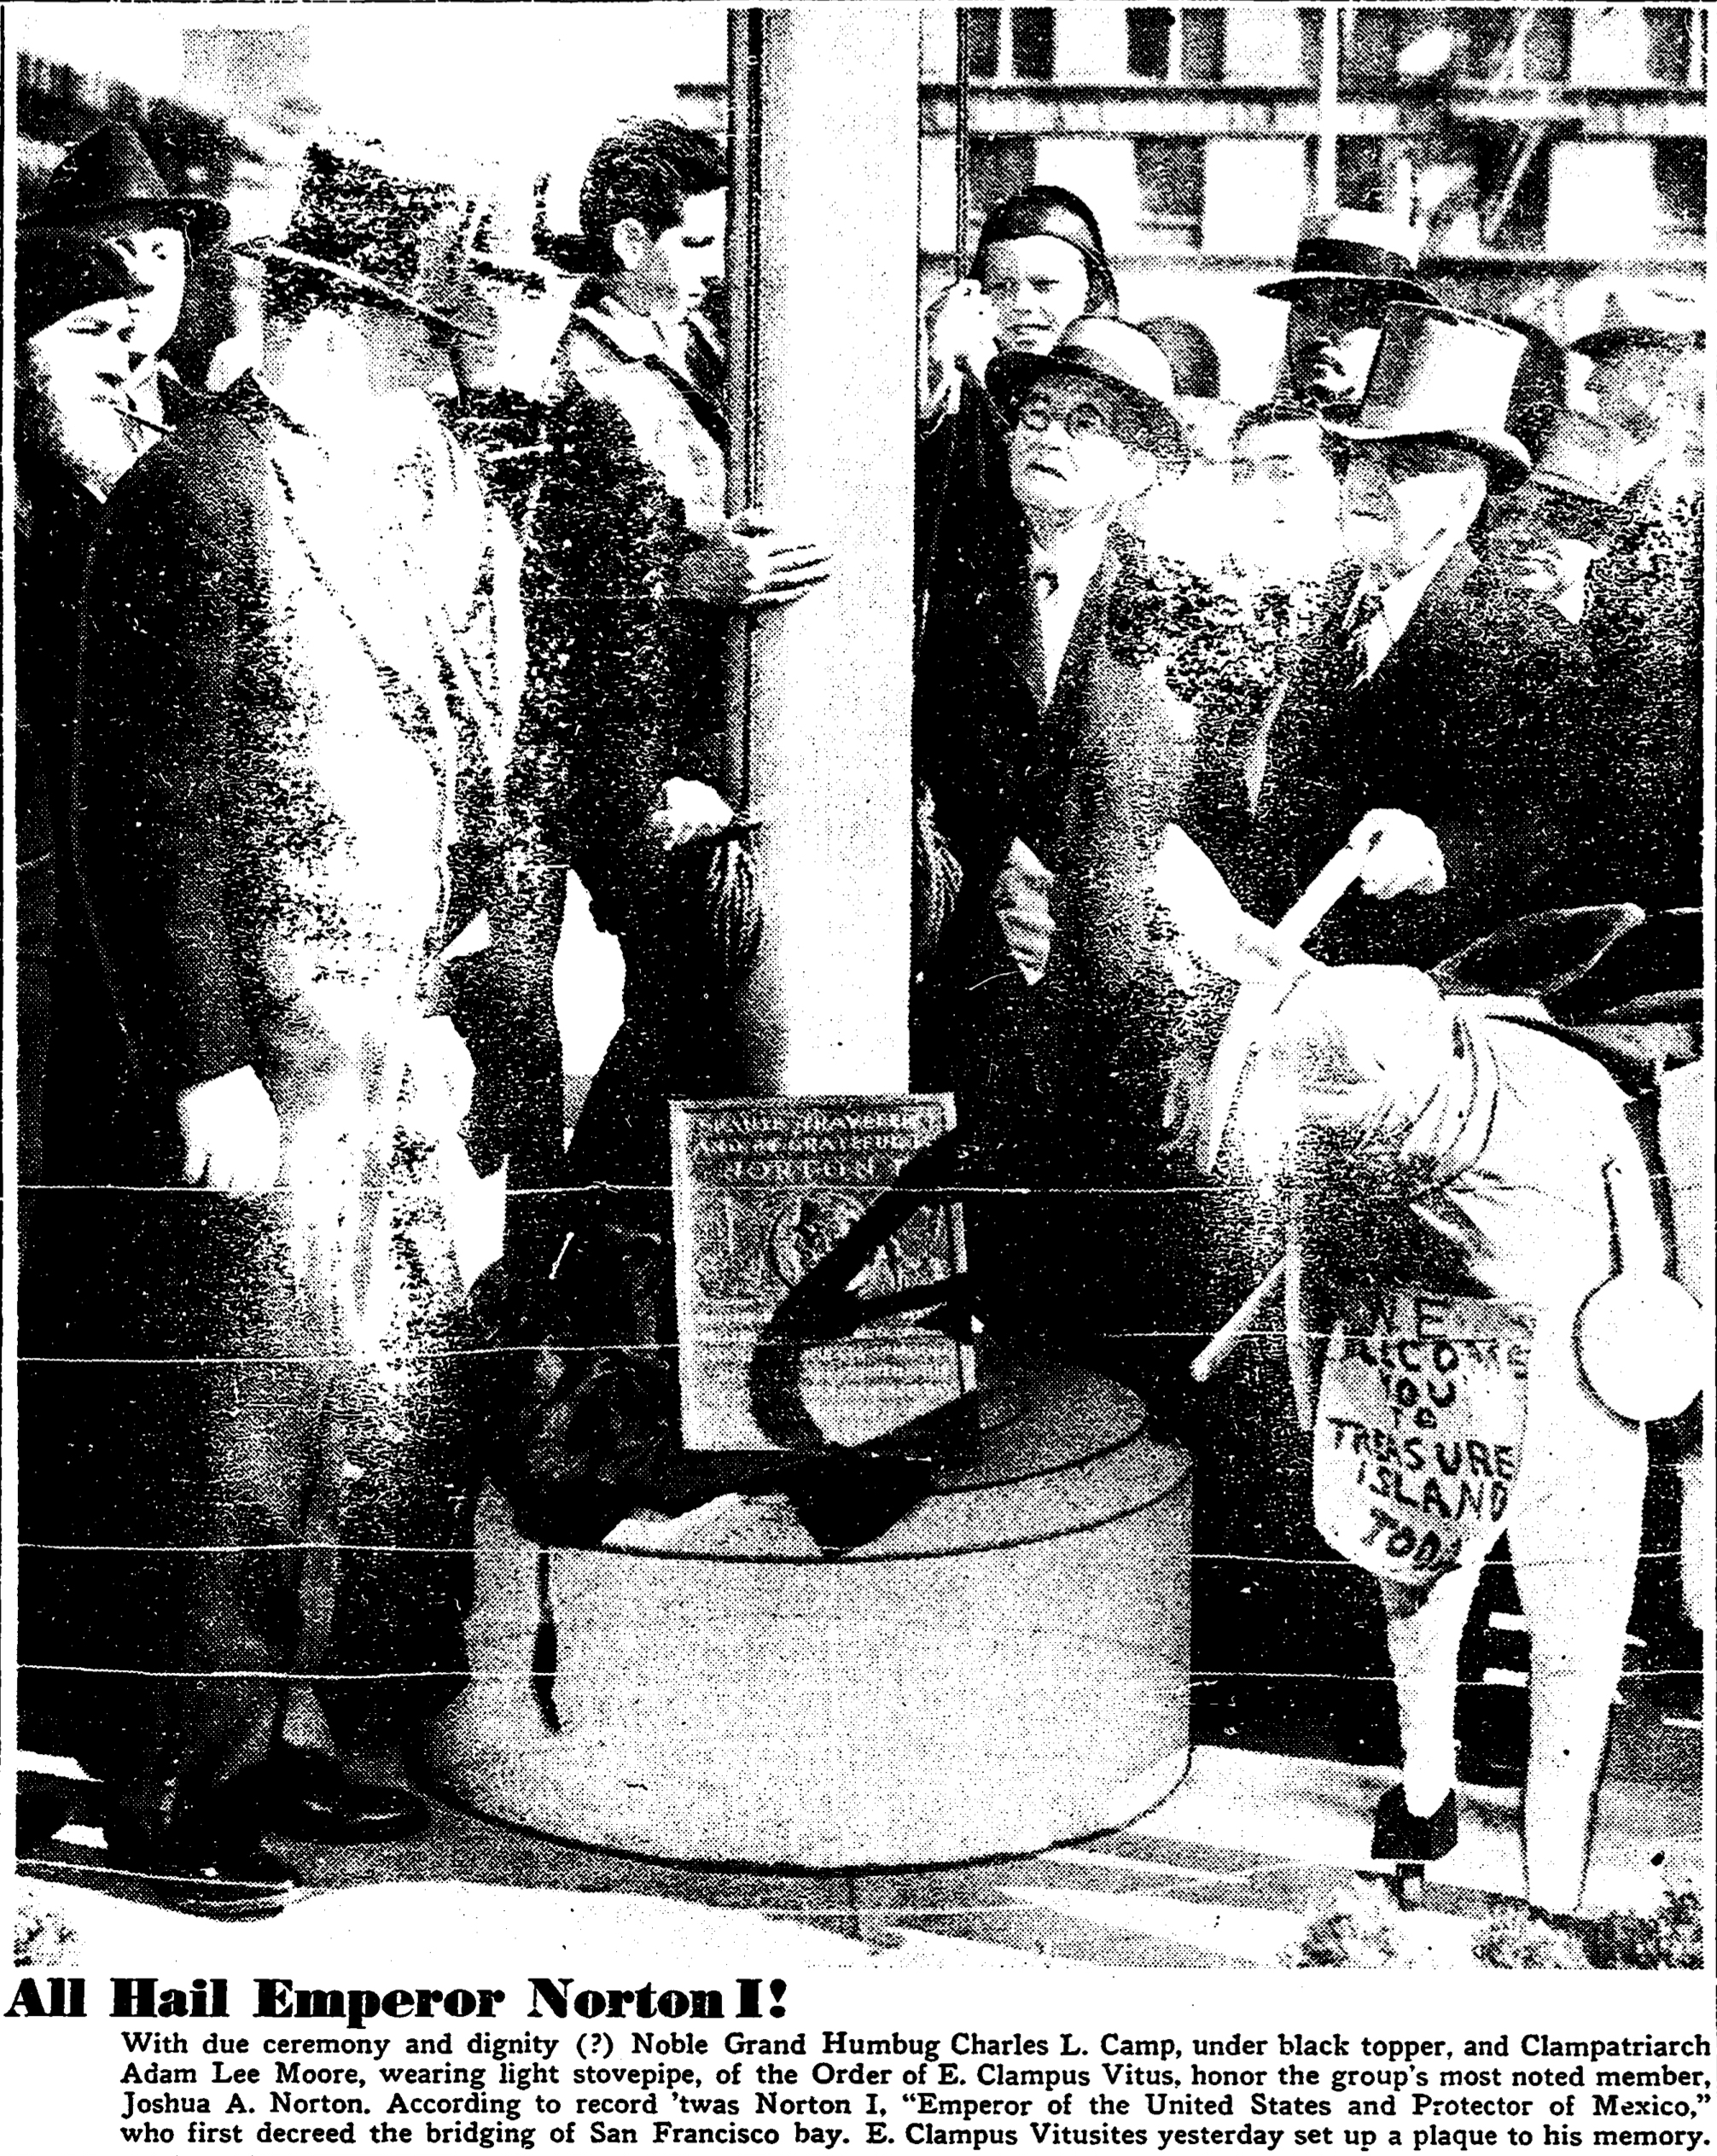 """Dedication on 25 February 1939 of the Emperor Norton plaque (""""Pause, Traveler"""") commissioned by the Ancient and Honorable Order of E Clampus Vitus.  Photo   from """"Bridge Father Honored by E. Clampusites,""""  San Francisco Chronicle , 26 February 1939, p.8. © San Francisco Chronicle. For full article, click  here . Source: San Francisco Public Library."""